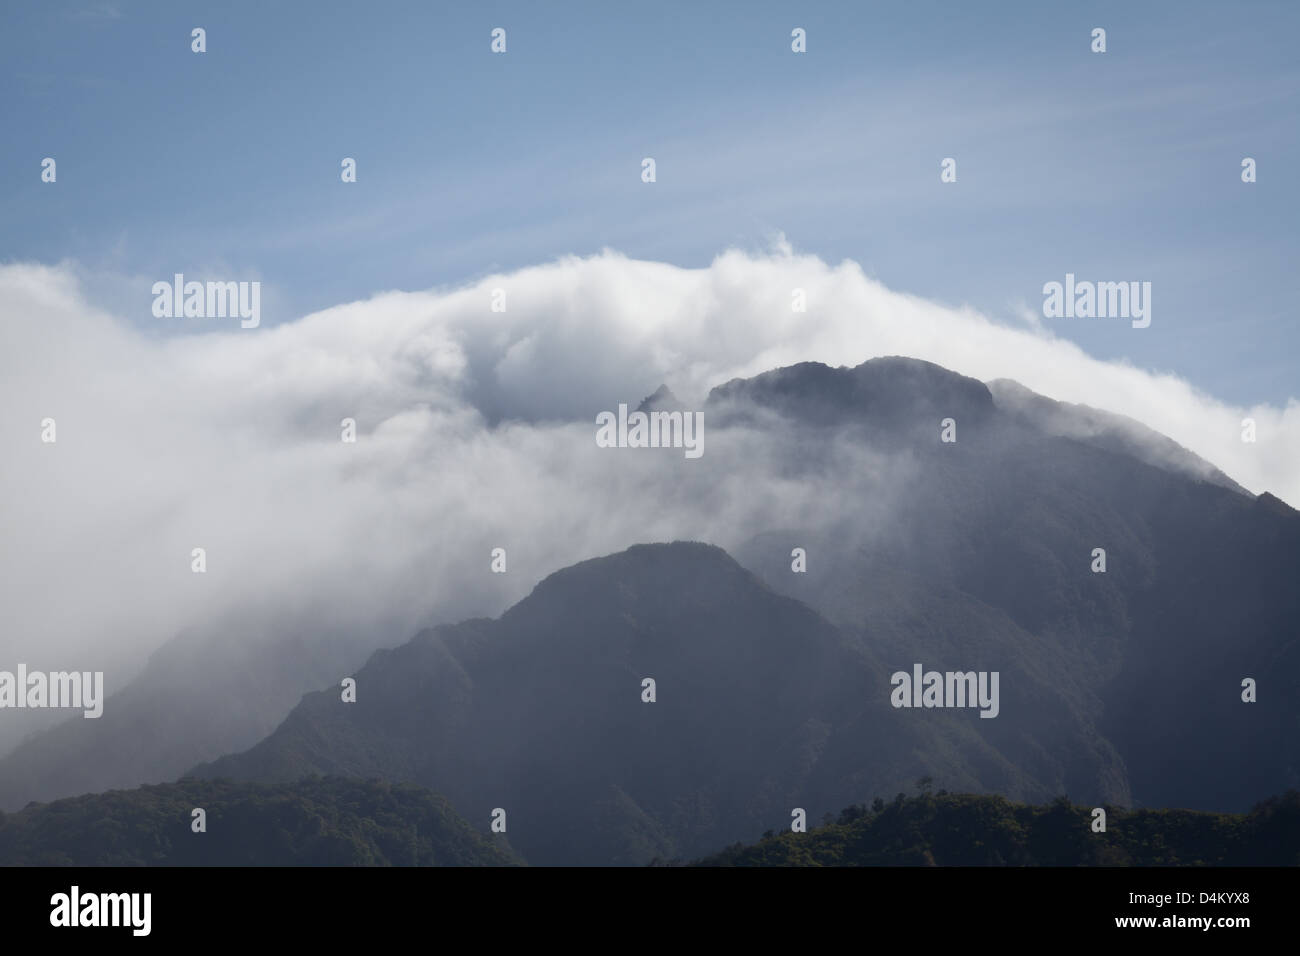 Volcan Baru. 3475 m, covered in clouds, Volcan Baru national park, Chiriqui province, Republic of Panama. - Stock Image